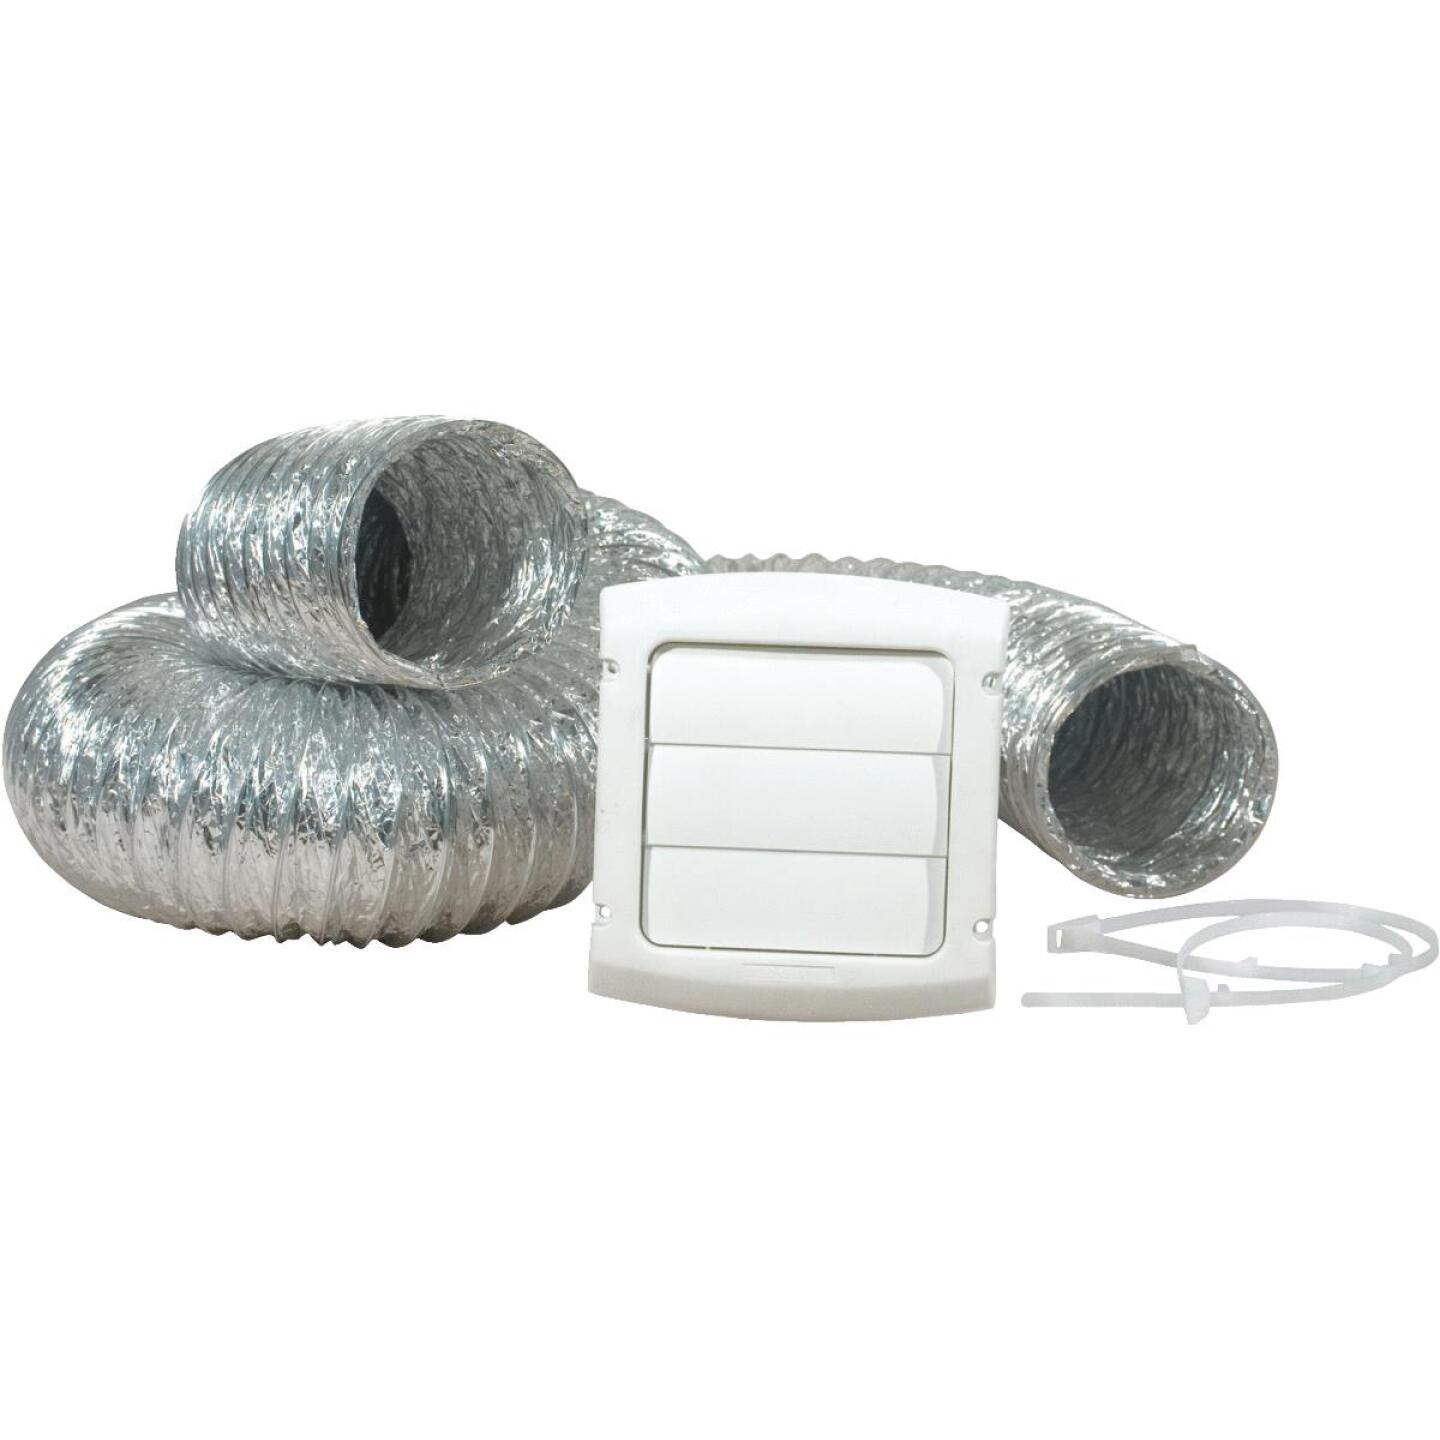 Dundas Jafine White Gas or Electric Dryer Vent Kit (4-Piece) Image 1